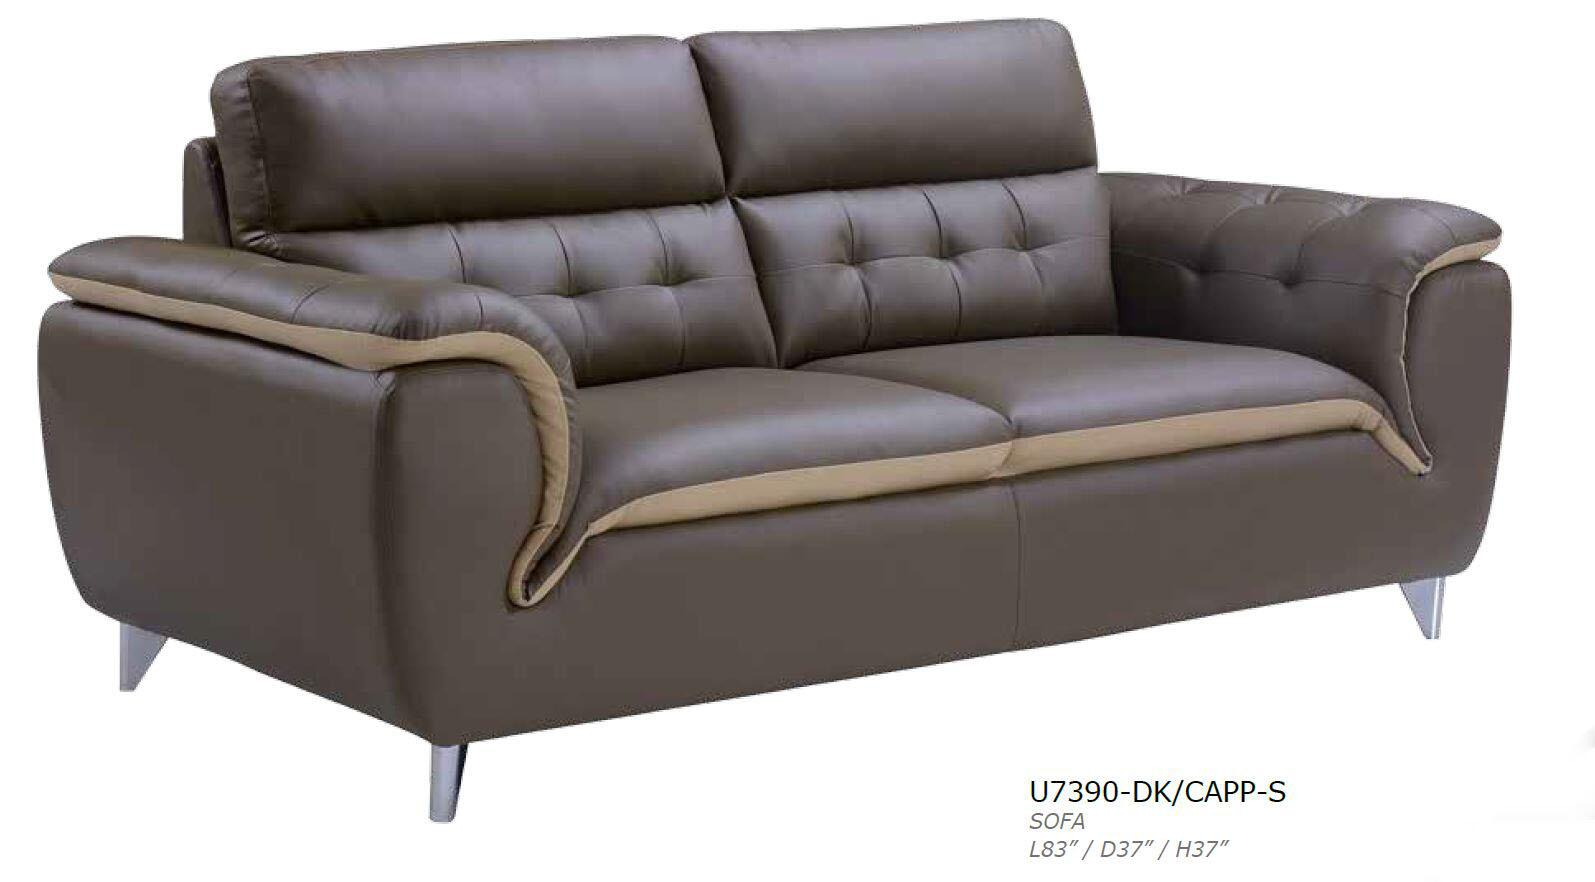 Global Furniture Usa U7390dkcapps Stationary Bonded Leather Sofa Appliances Connection